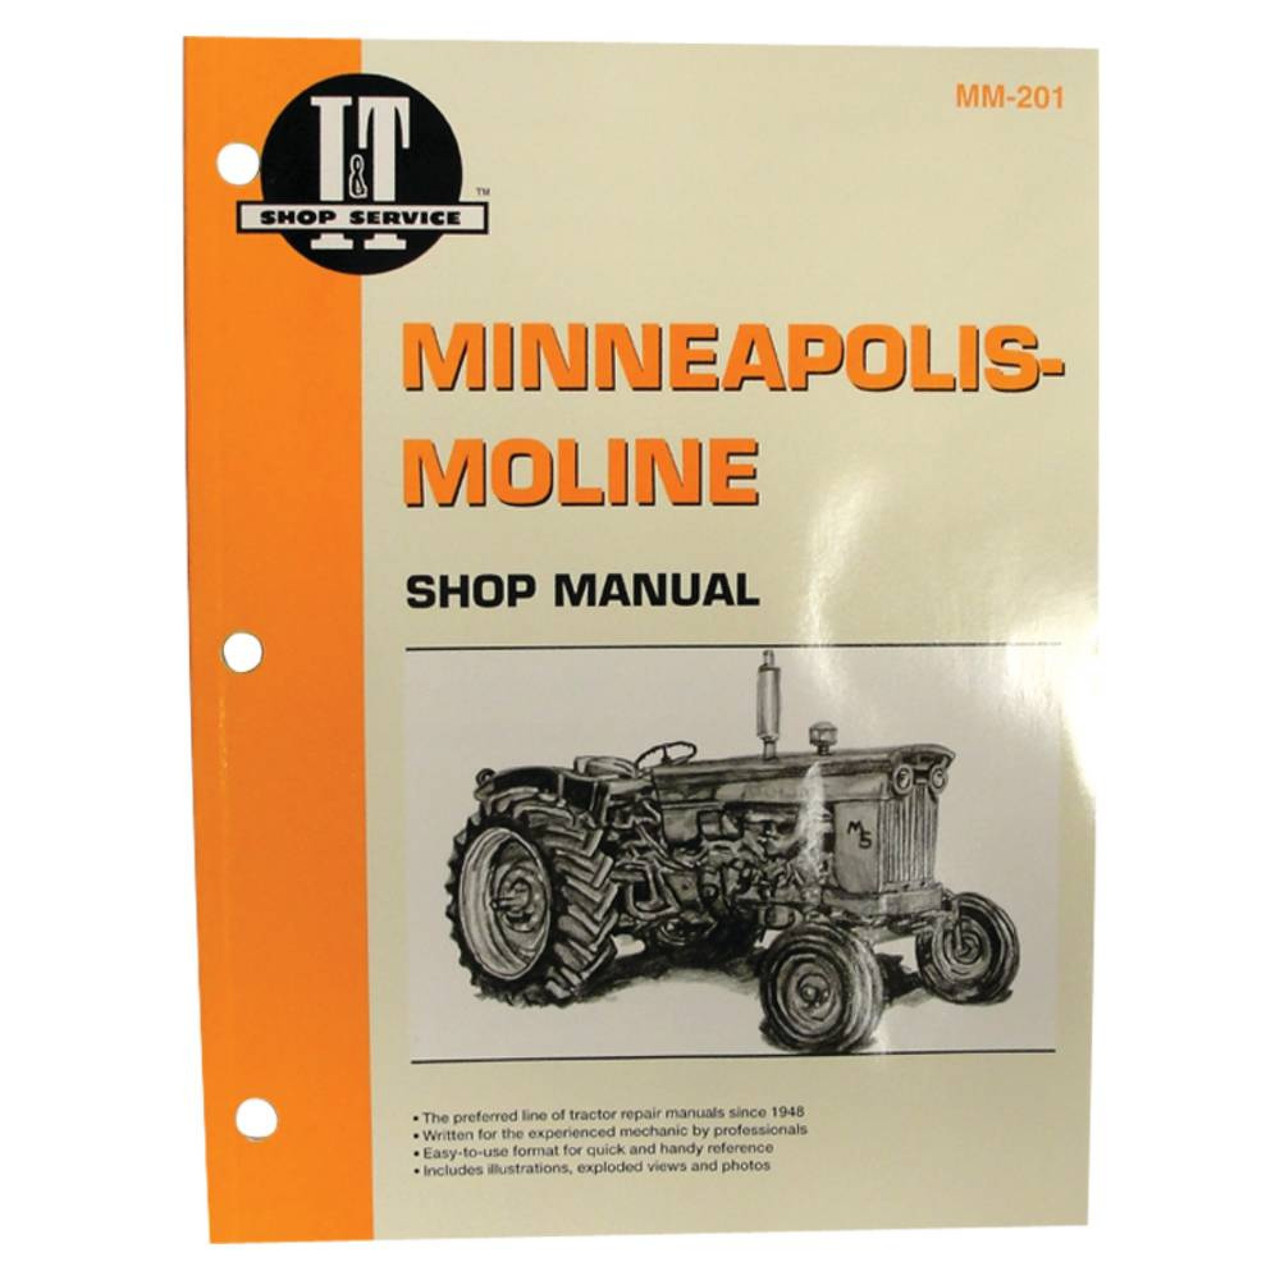 small resolution of new service manual for minneapolis moline tractor mm201 335 4 5 battery wire diagram avery a tractor wire diagrams